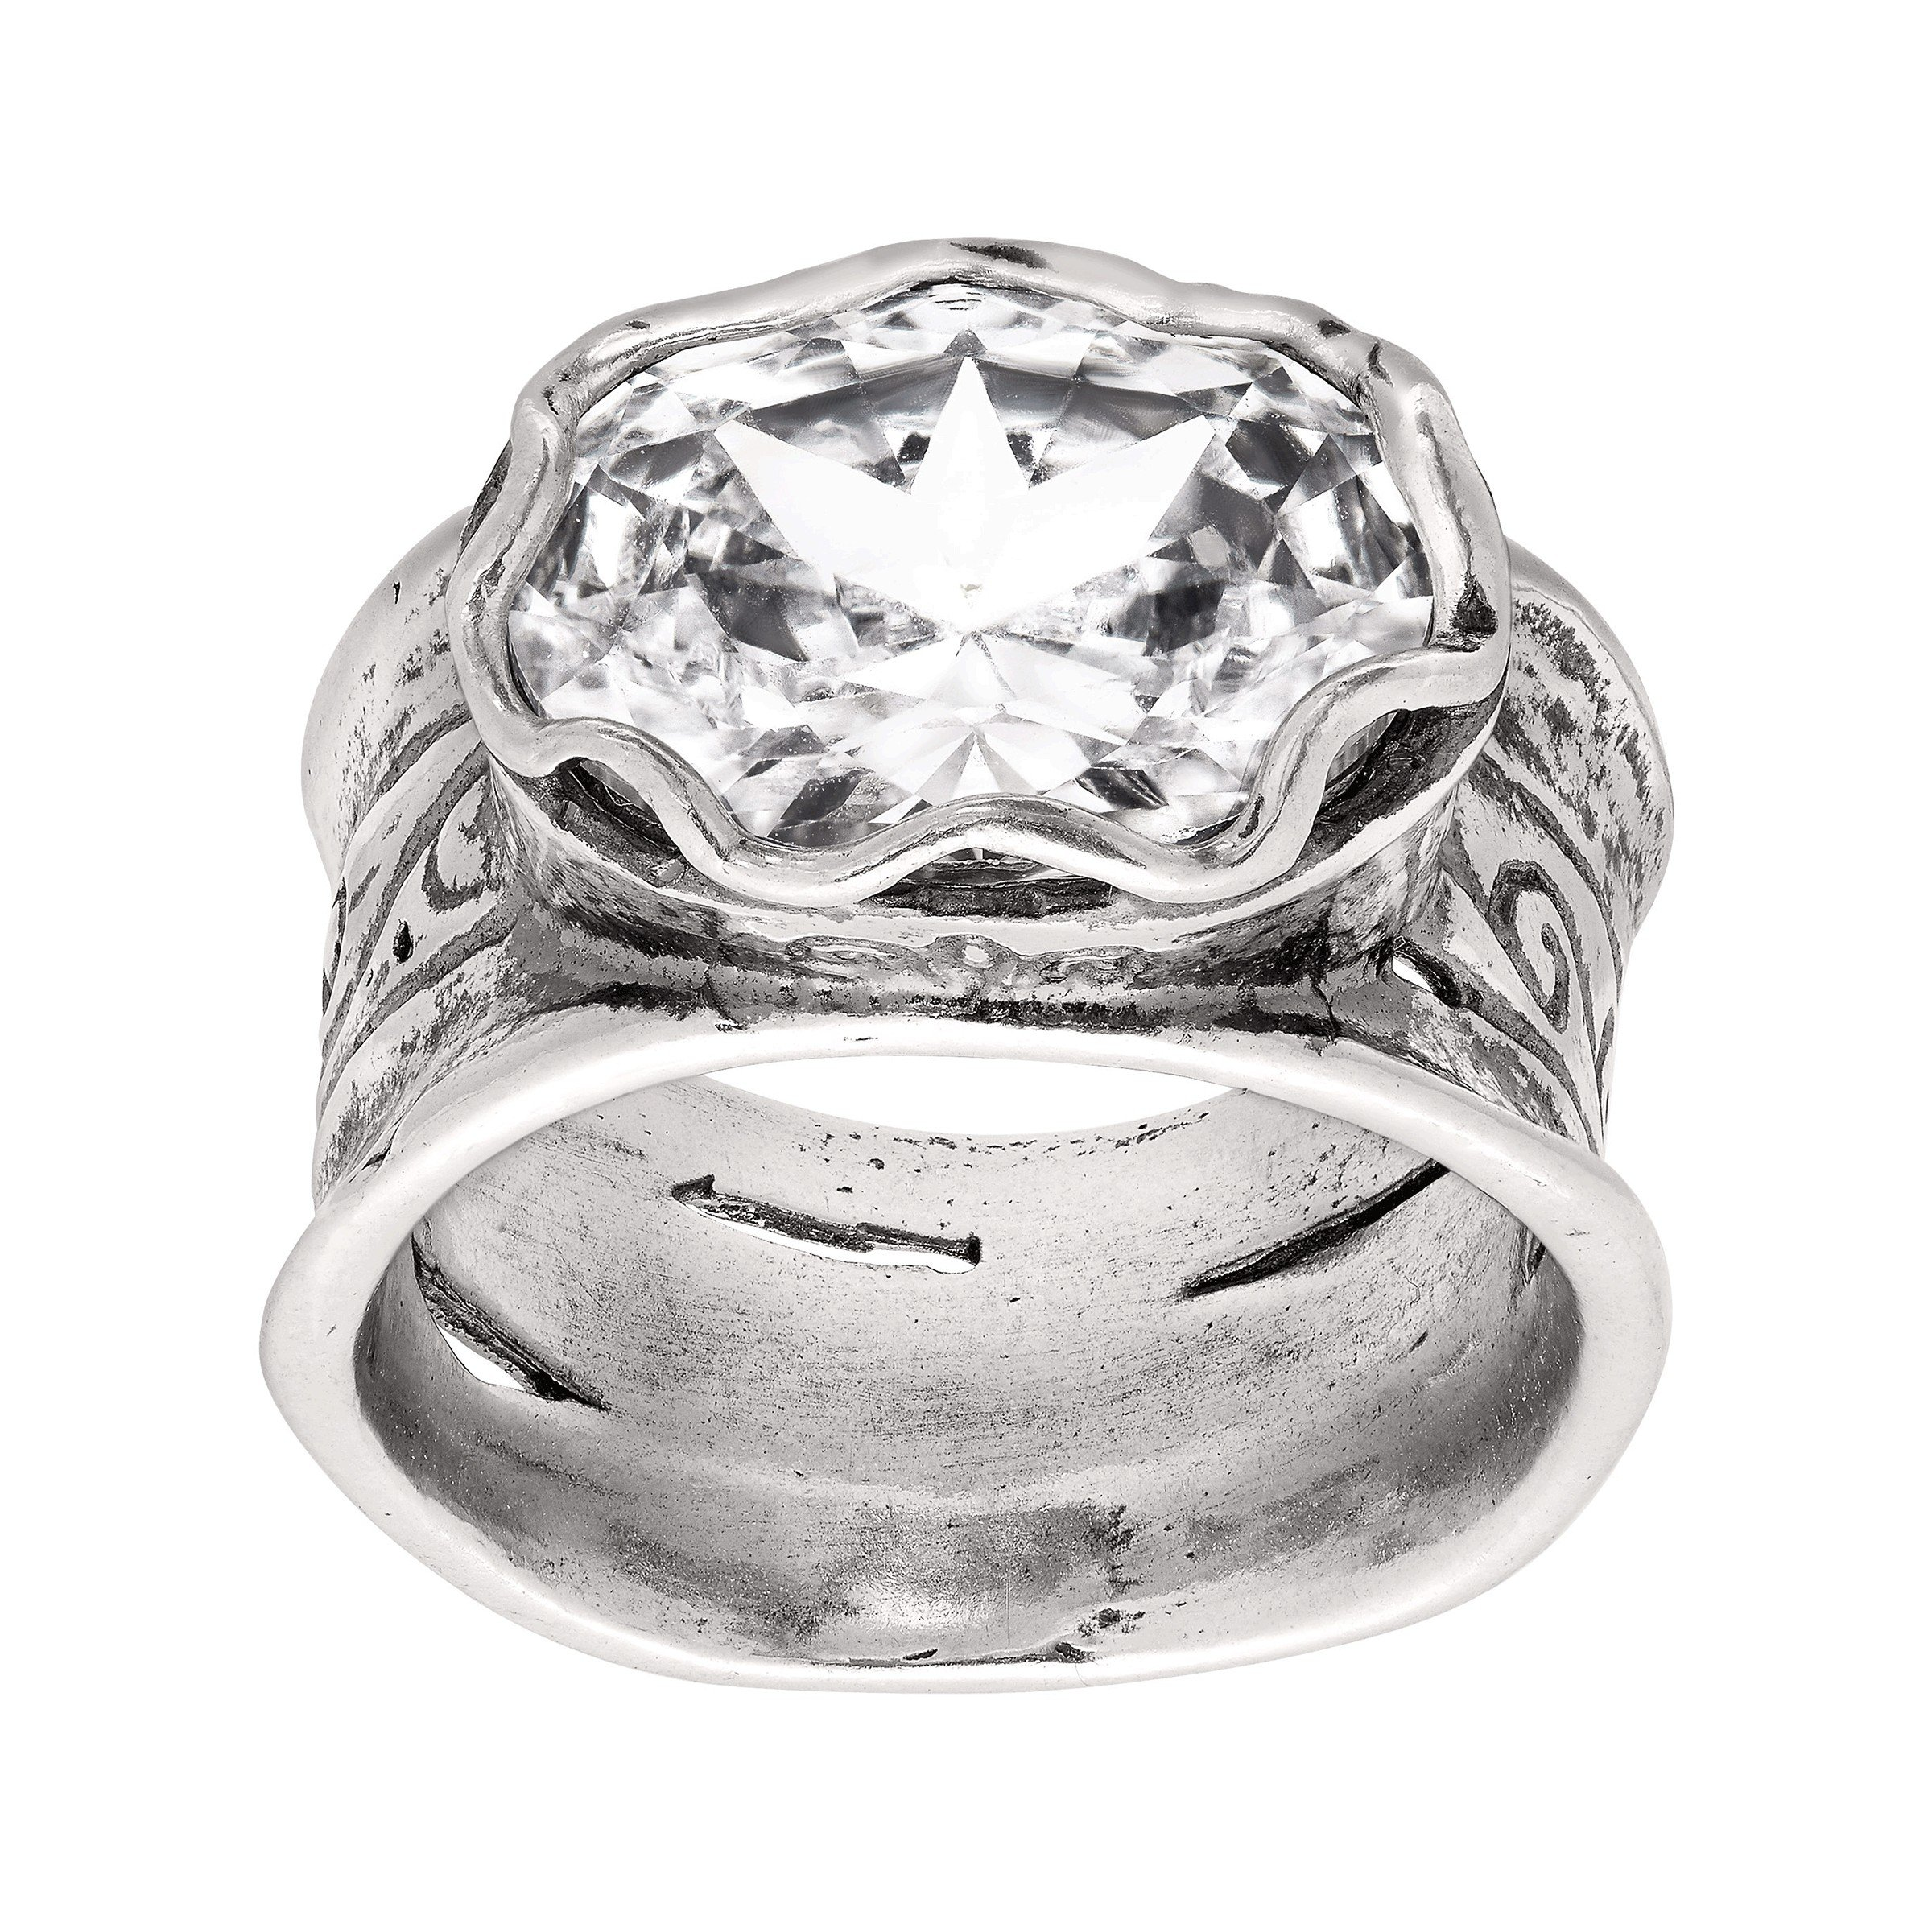 Silpada 'Rustic Royalty' 7 ct Cubic Zirconia Statement Ring in Sterling Silver